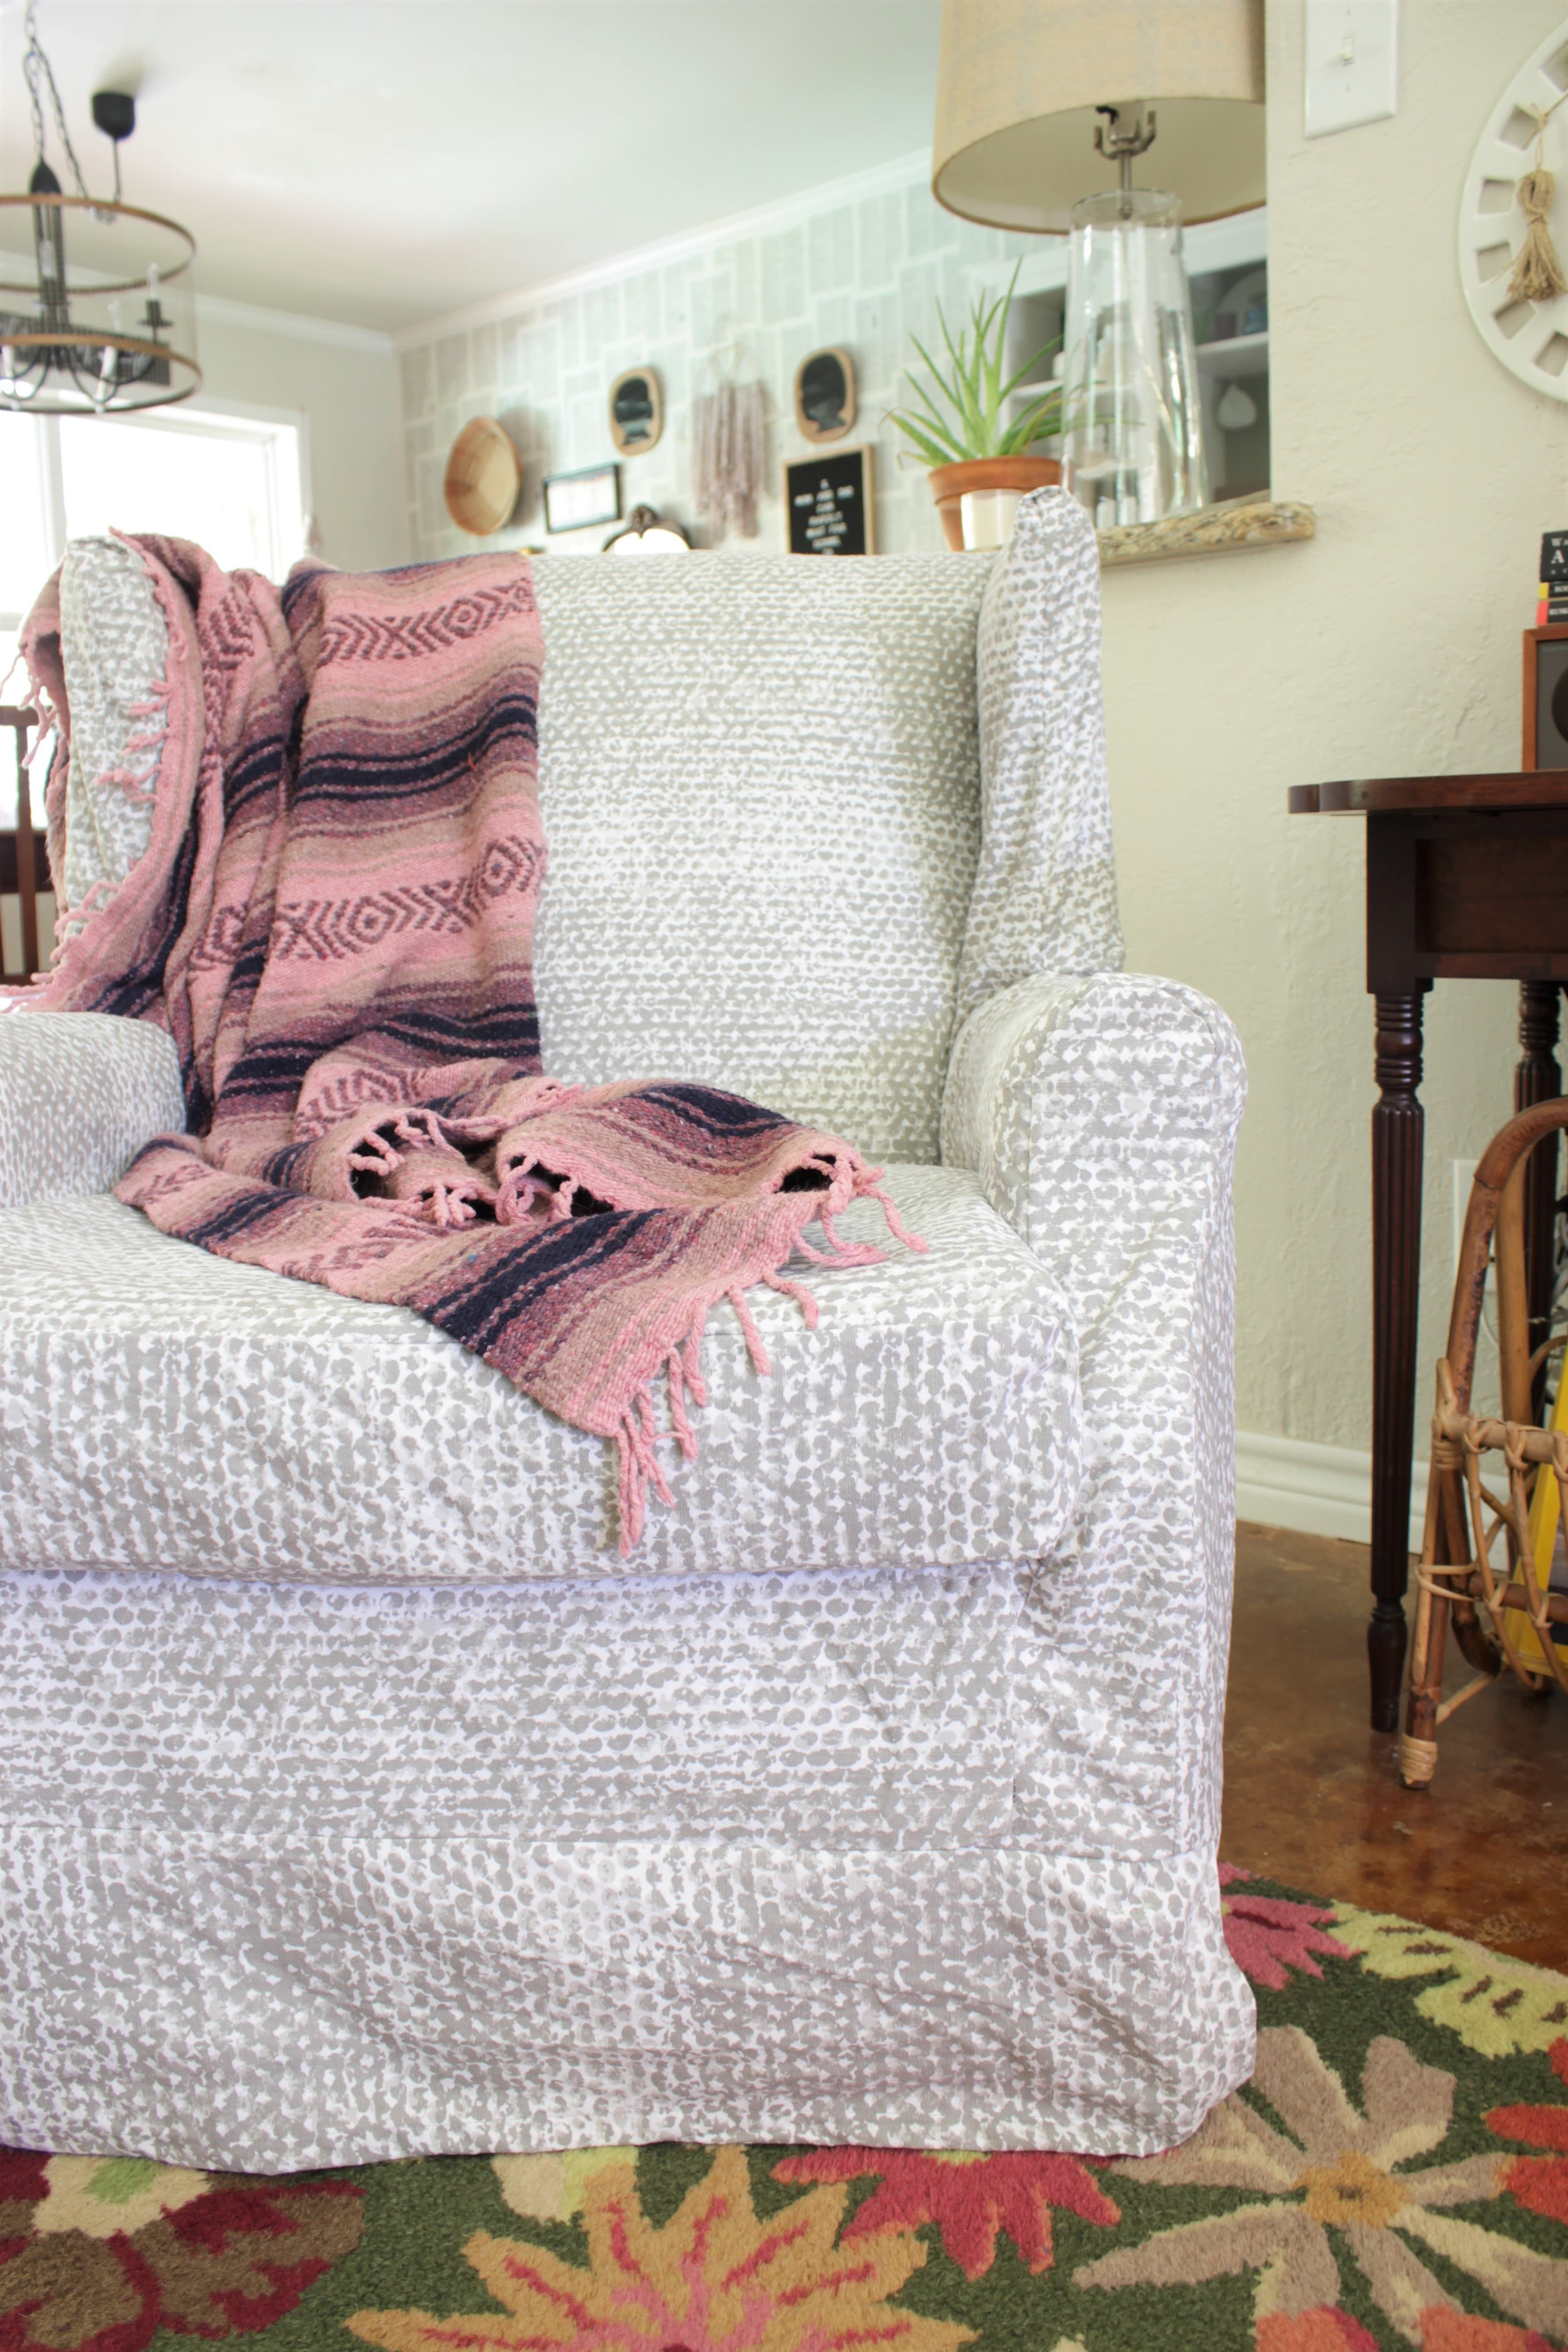 Wingback Chair Slipcover Tutorial | Create Your Own DIY Slipcover To  Refresh An Old Wingback Chair With This Fun And Easy Tutorial! Fabric.com  Blog